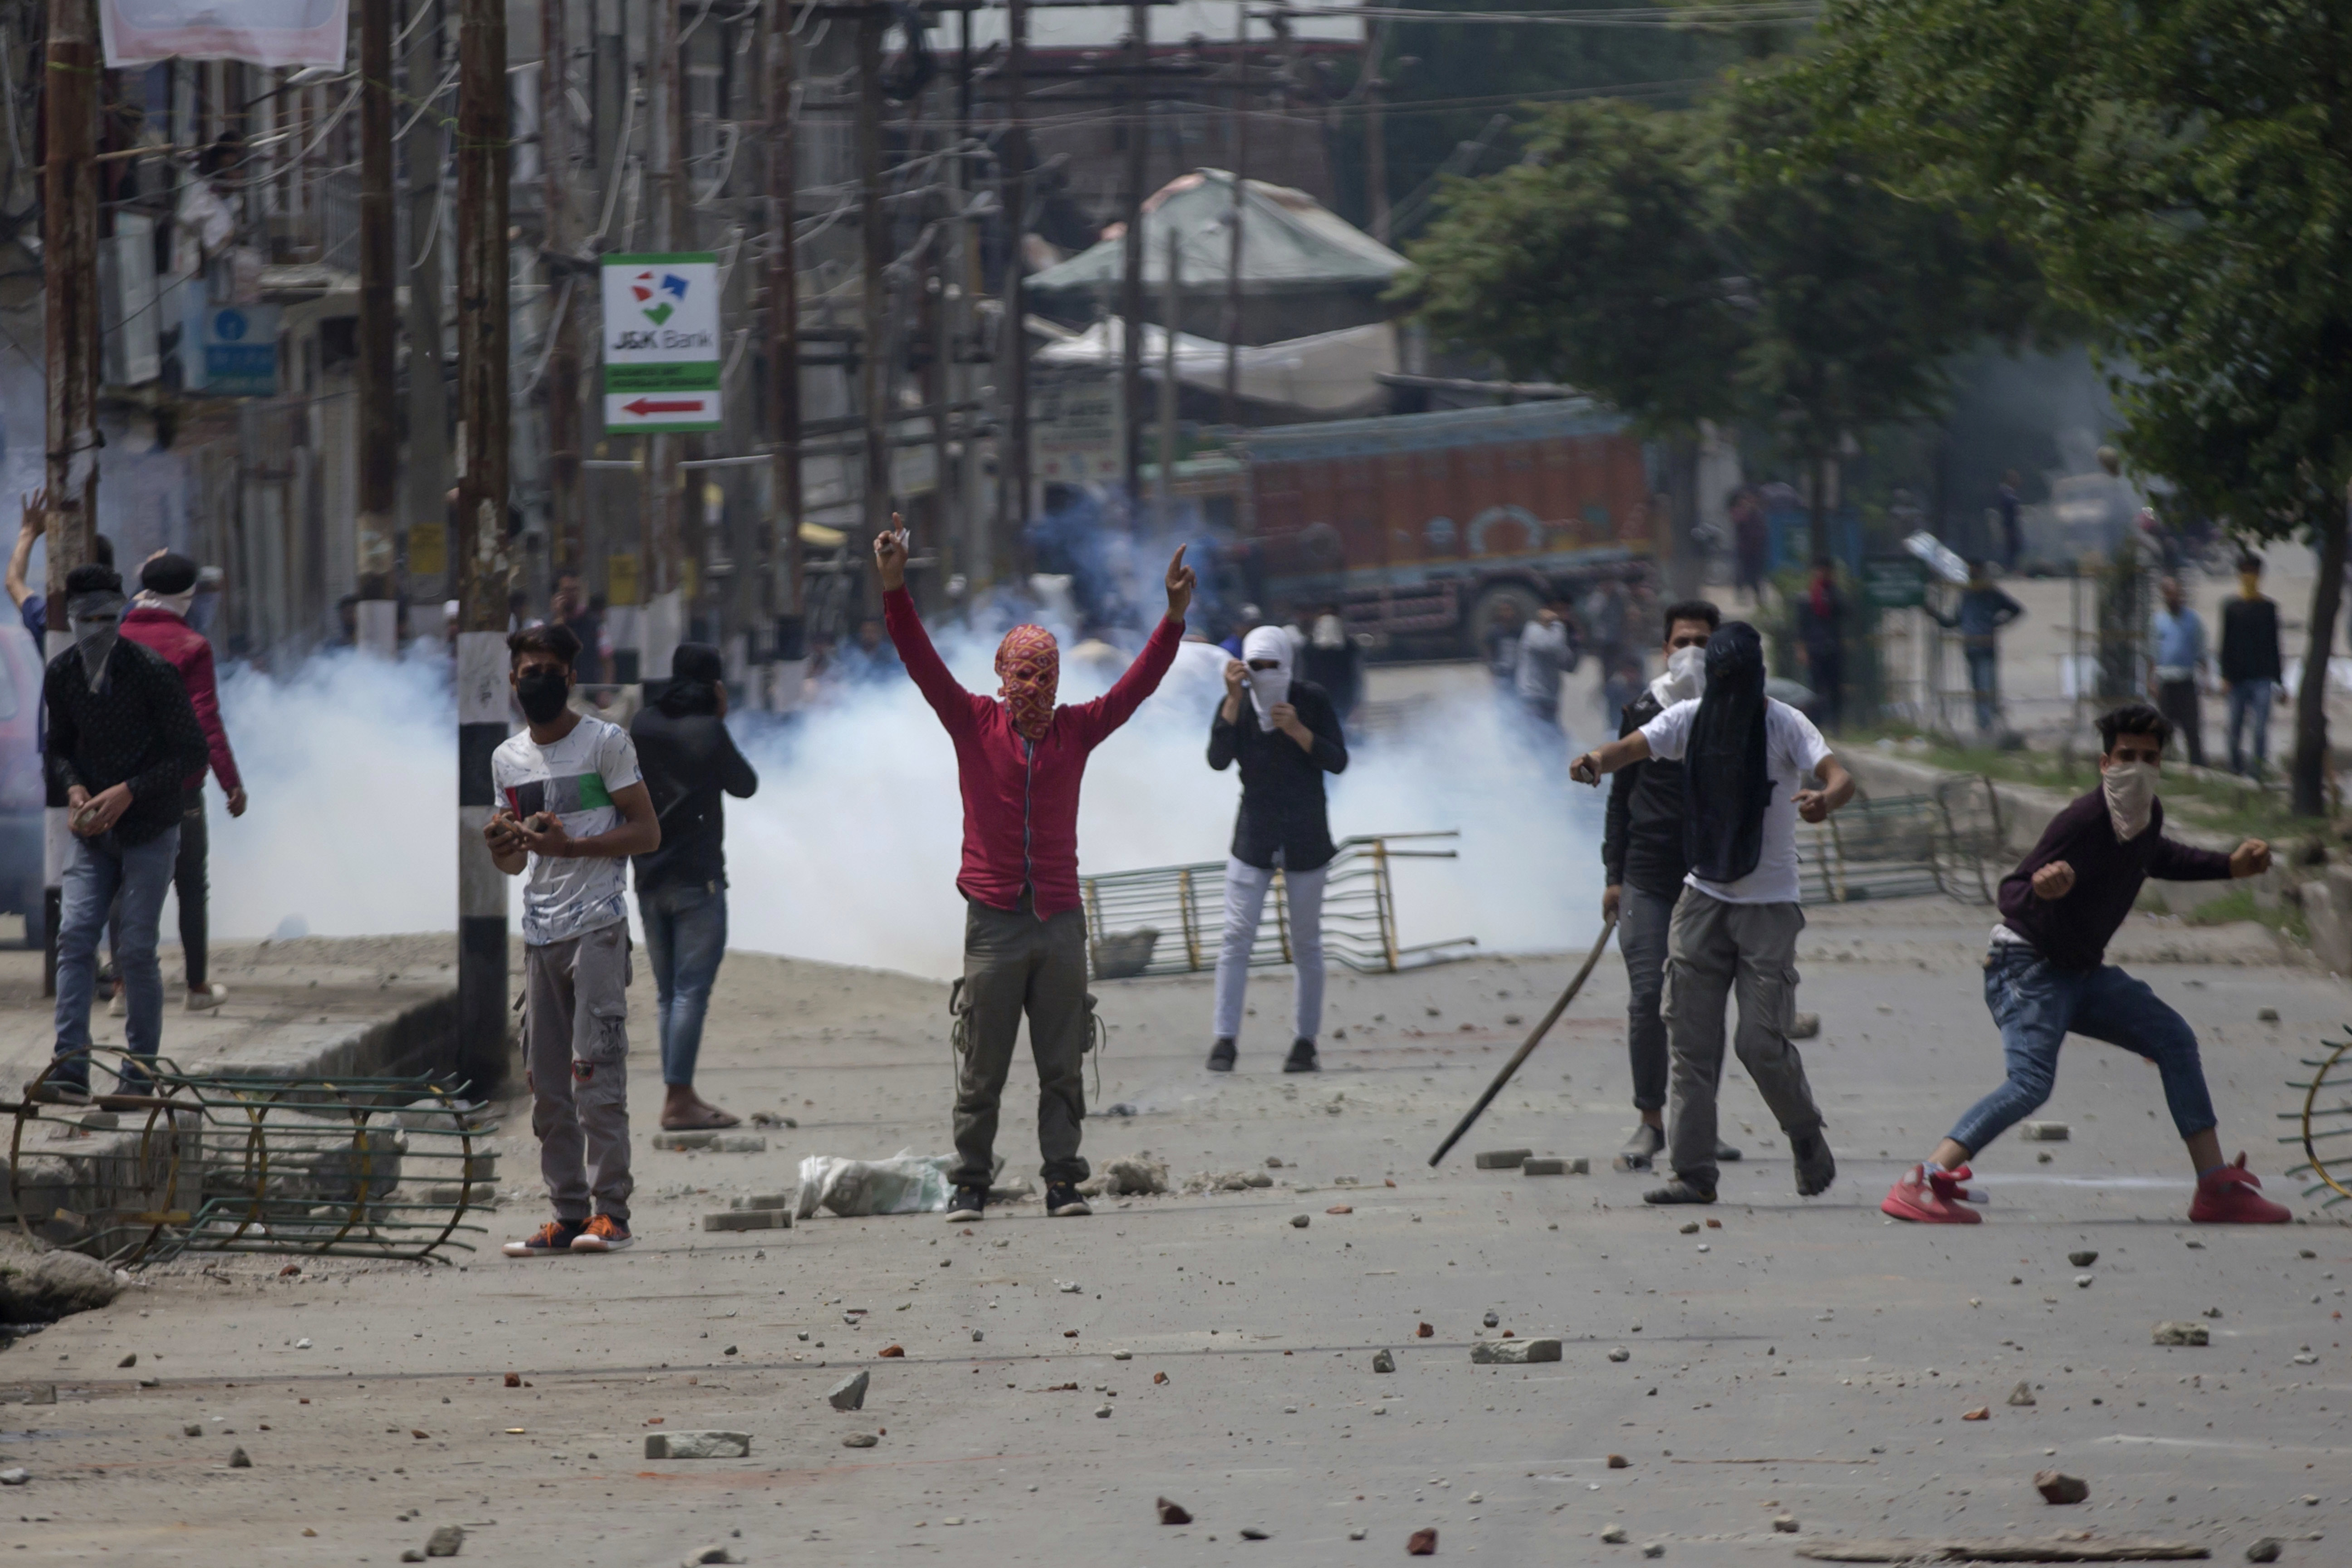 Kashmiri protesters throw rocks and bricks at Indian paramilitary soldiers near the site of a gunbattle in Srinagar, Indian-controlled Kashmir, May 5, 2018.